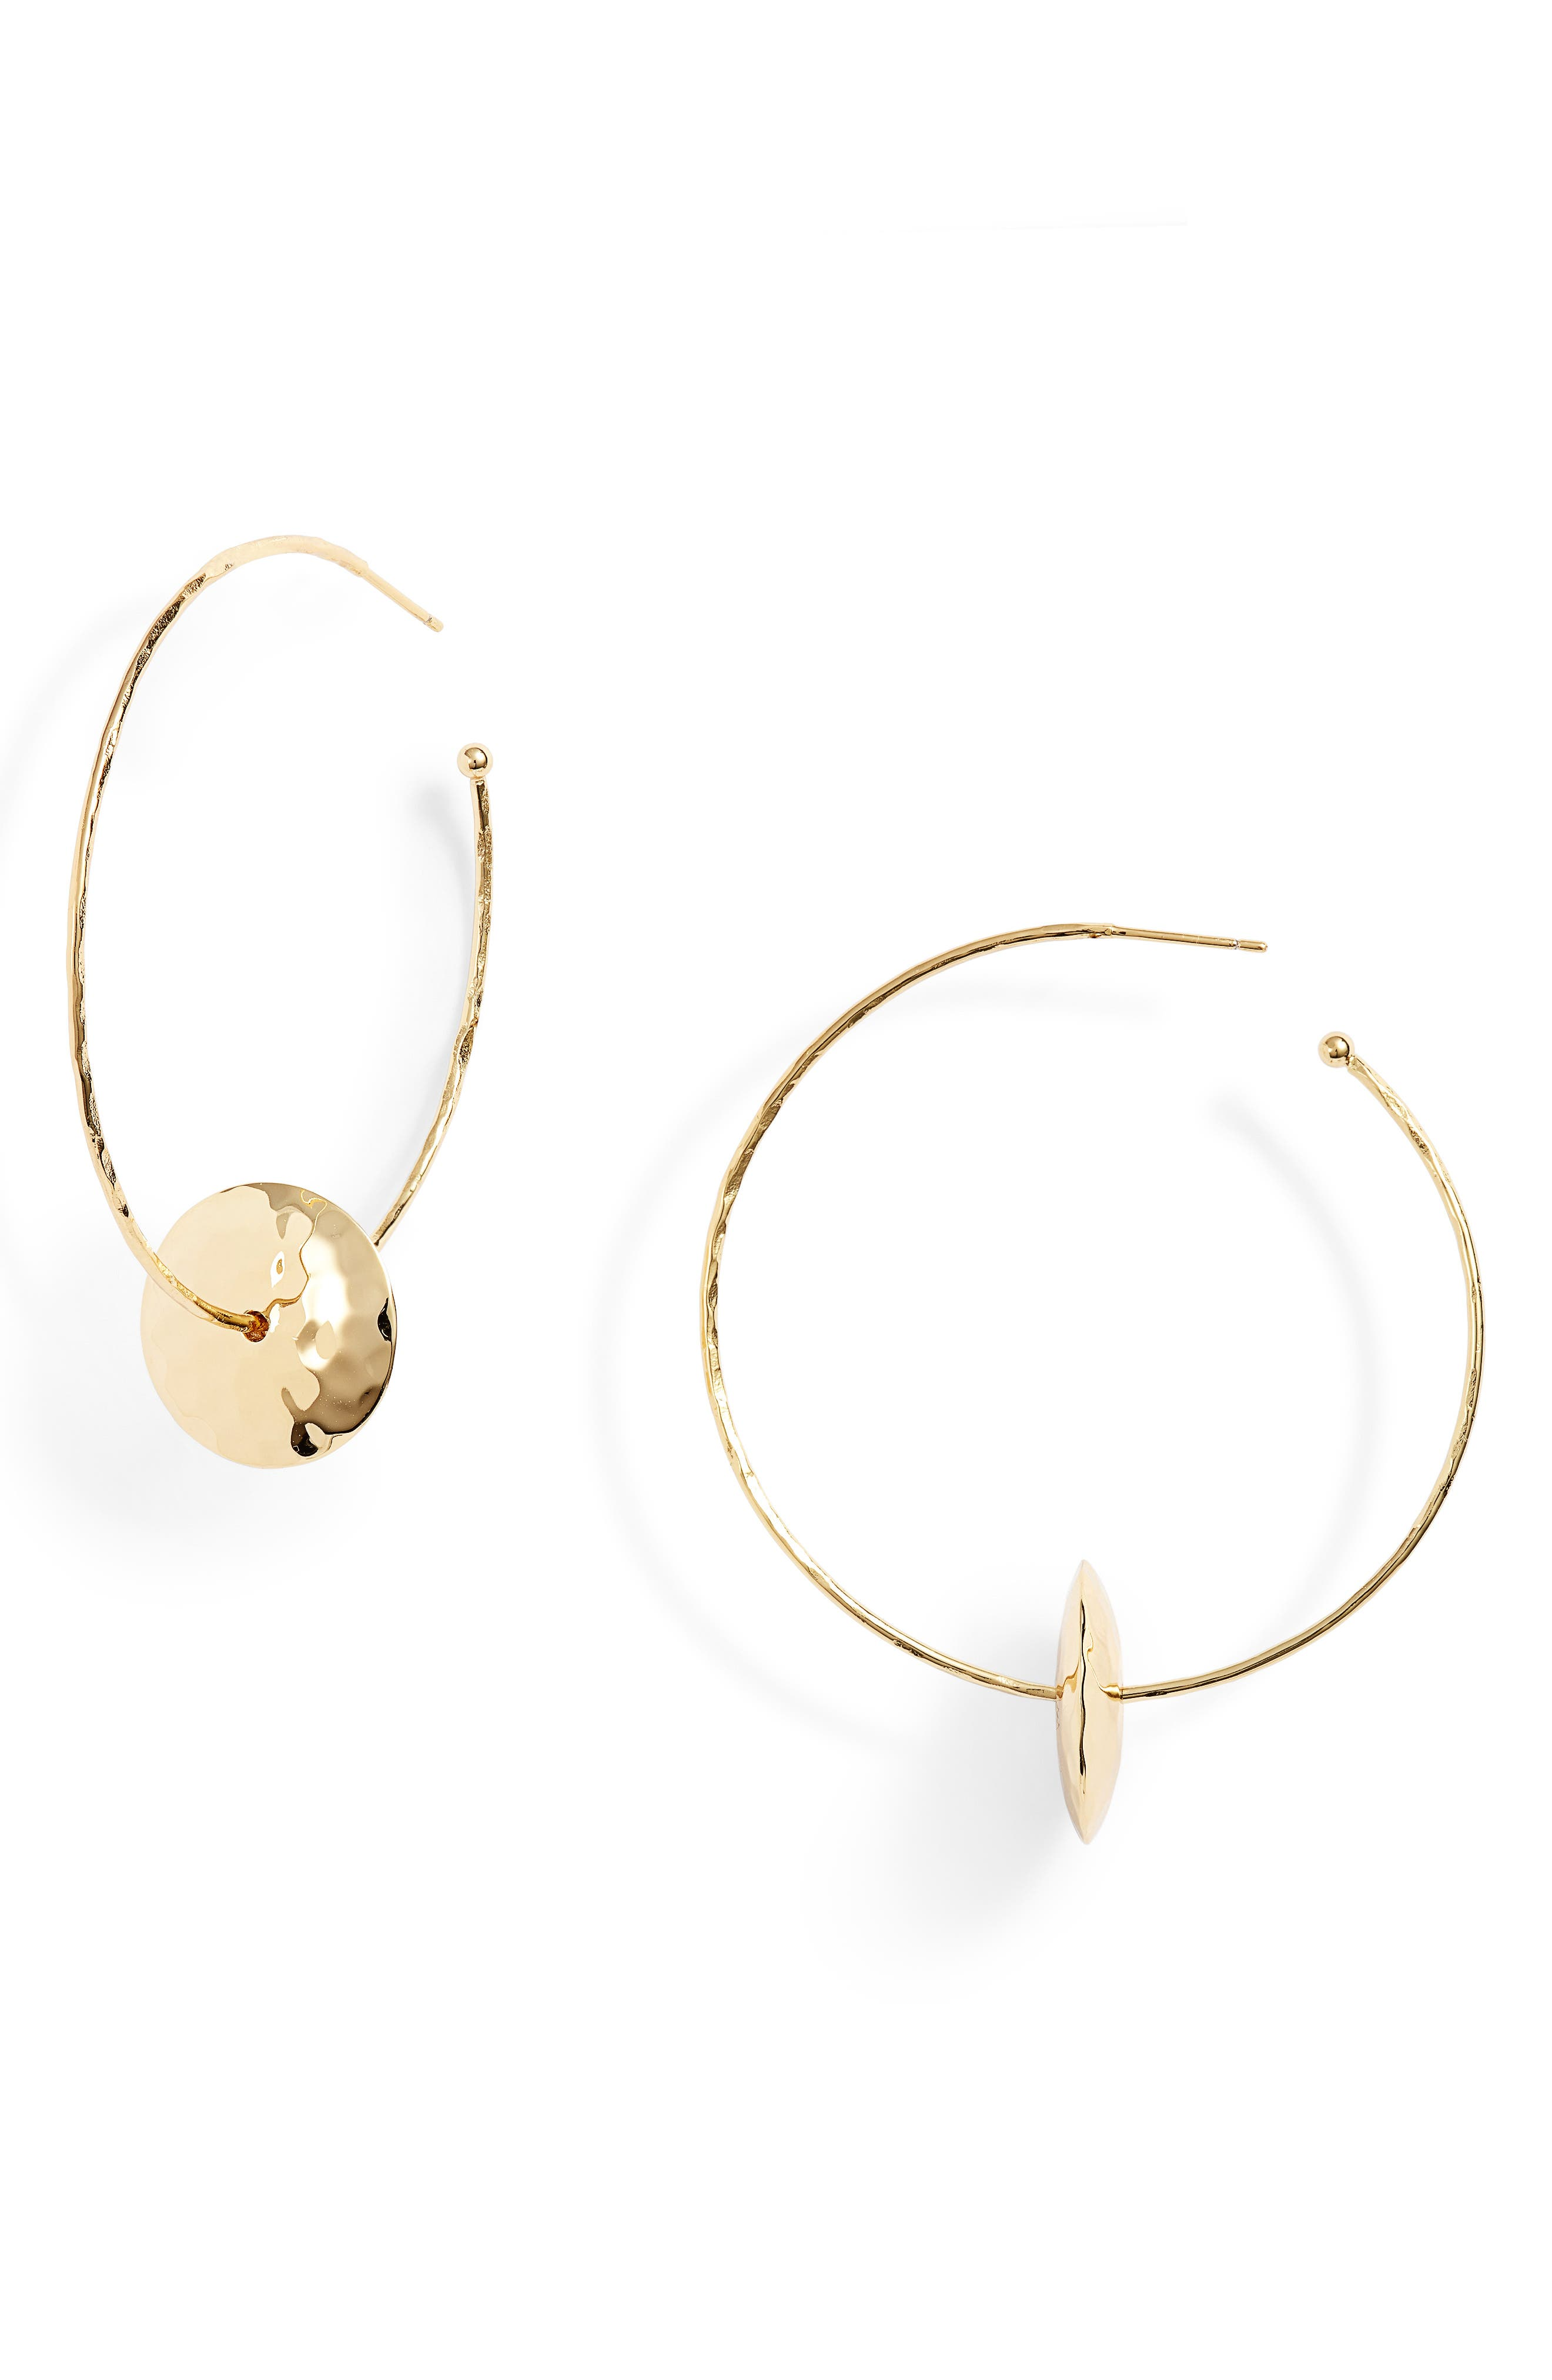 Marlow Hammered Disc Hoop Earrings,                             Main thumbnail 1, color,                             Gold